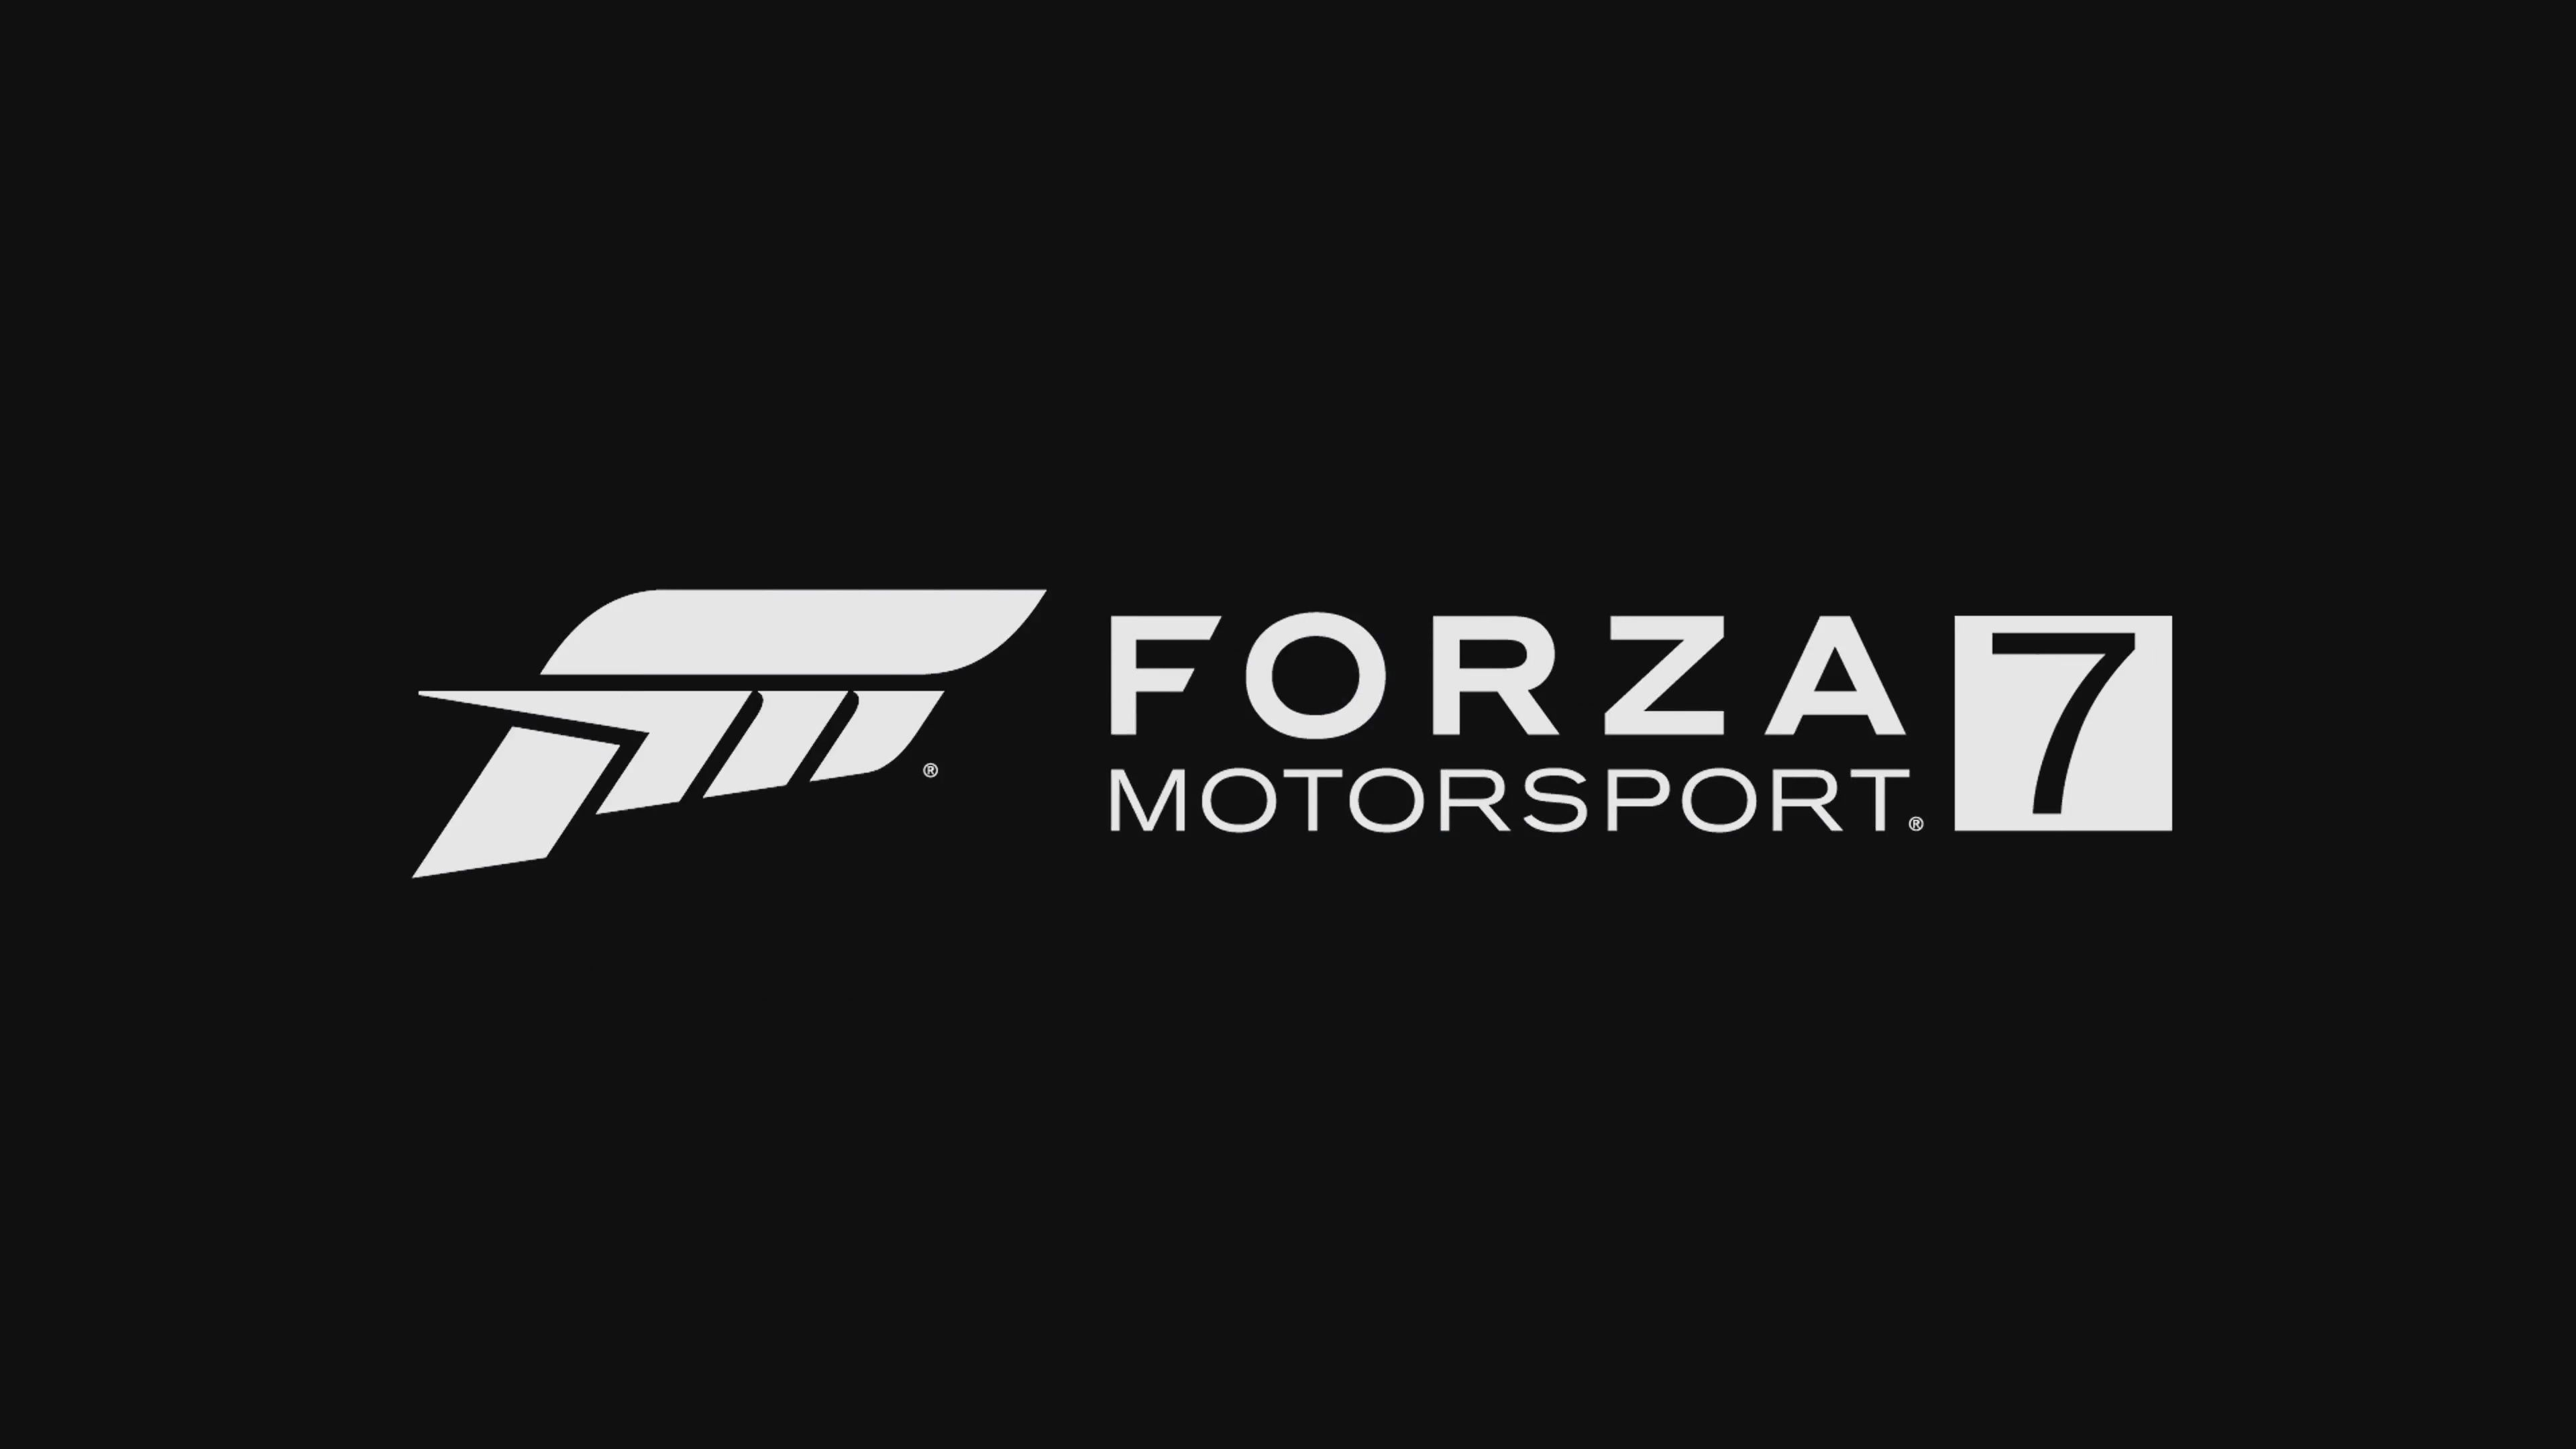 Forza Motorsport 7 HD Wallpaper